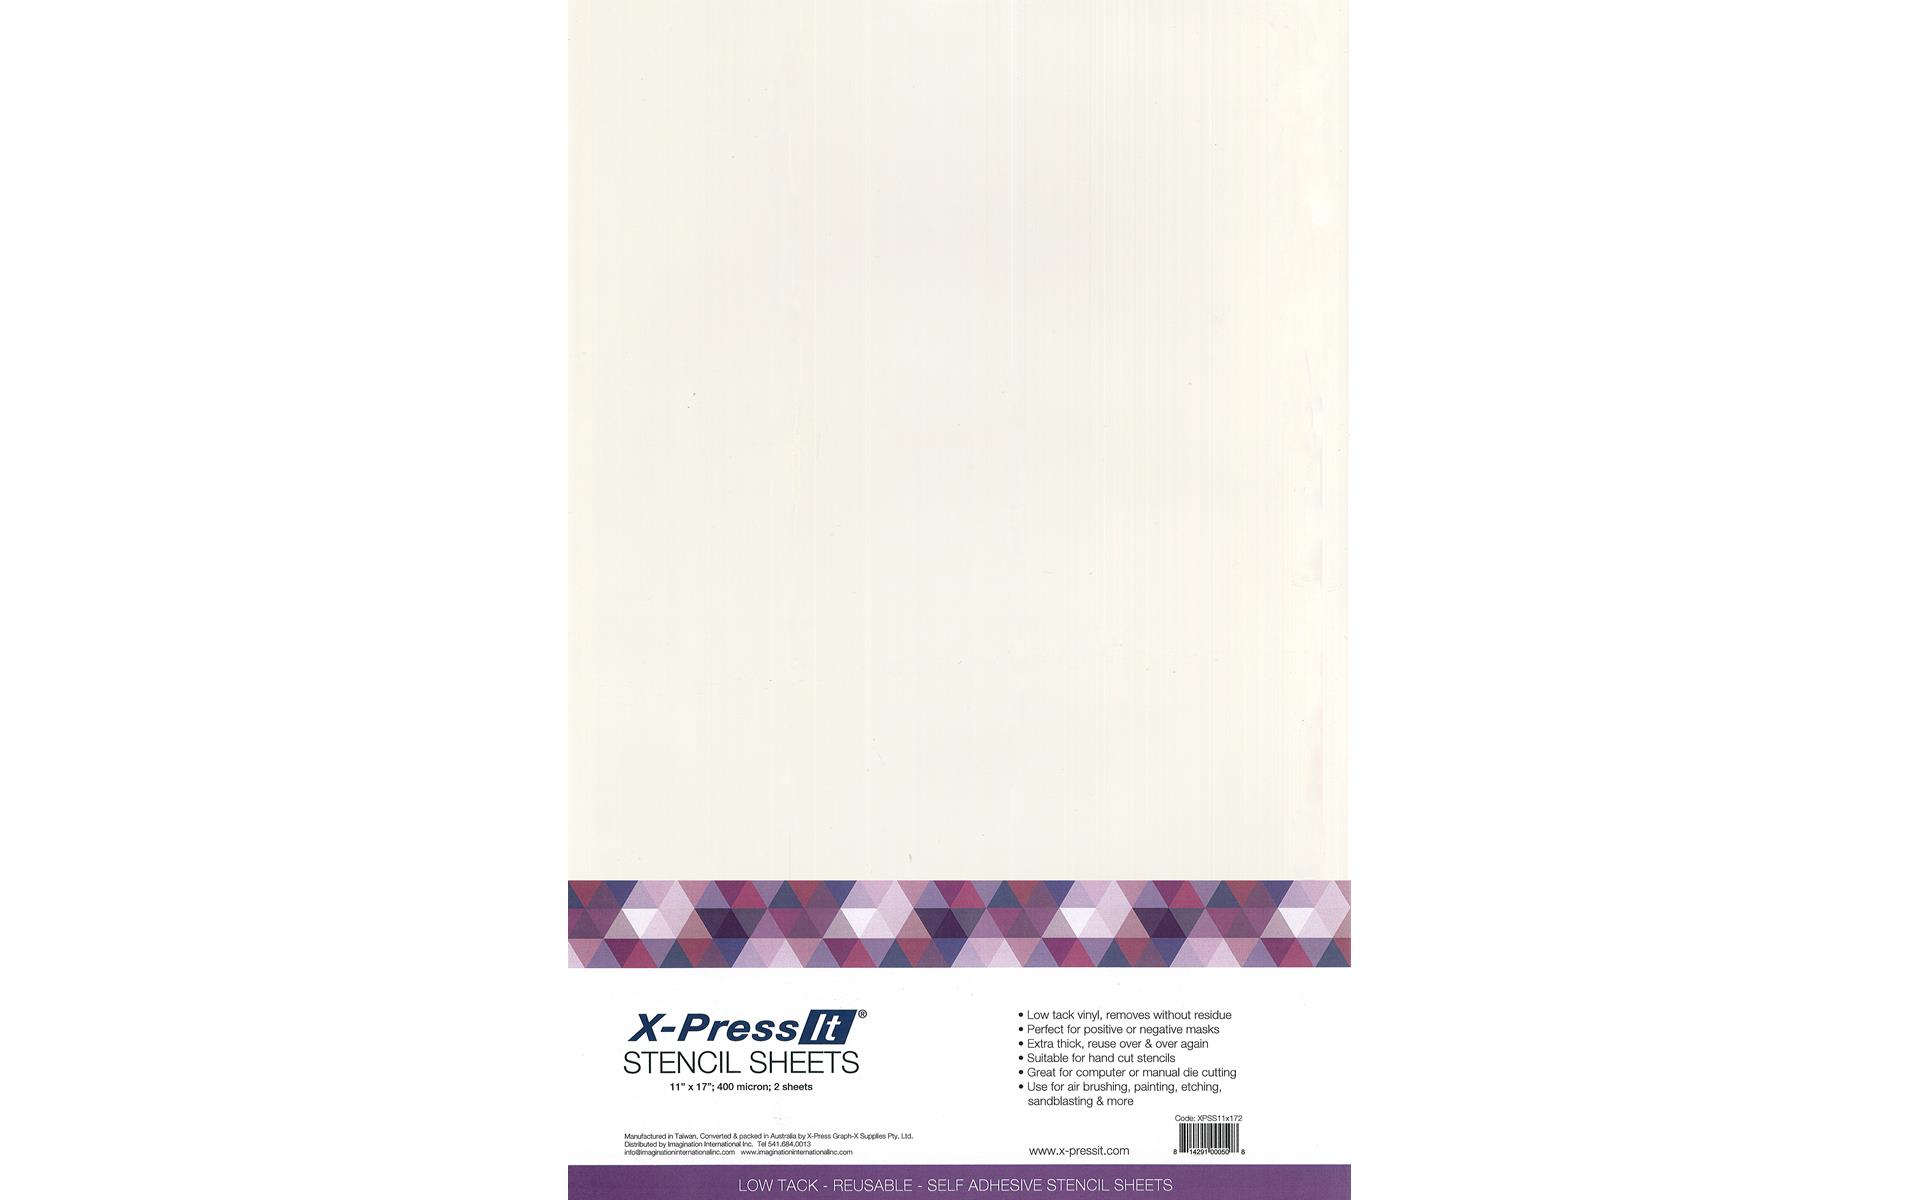 X Press It Stencil Adhesive Sheet 11x17 2pc Walmart Com Walmart Com